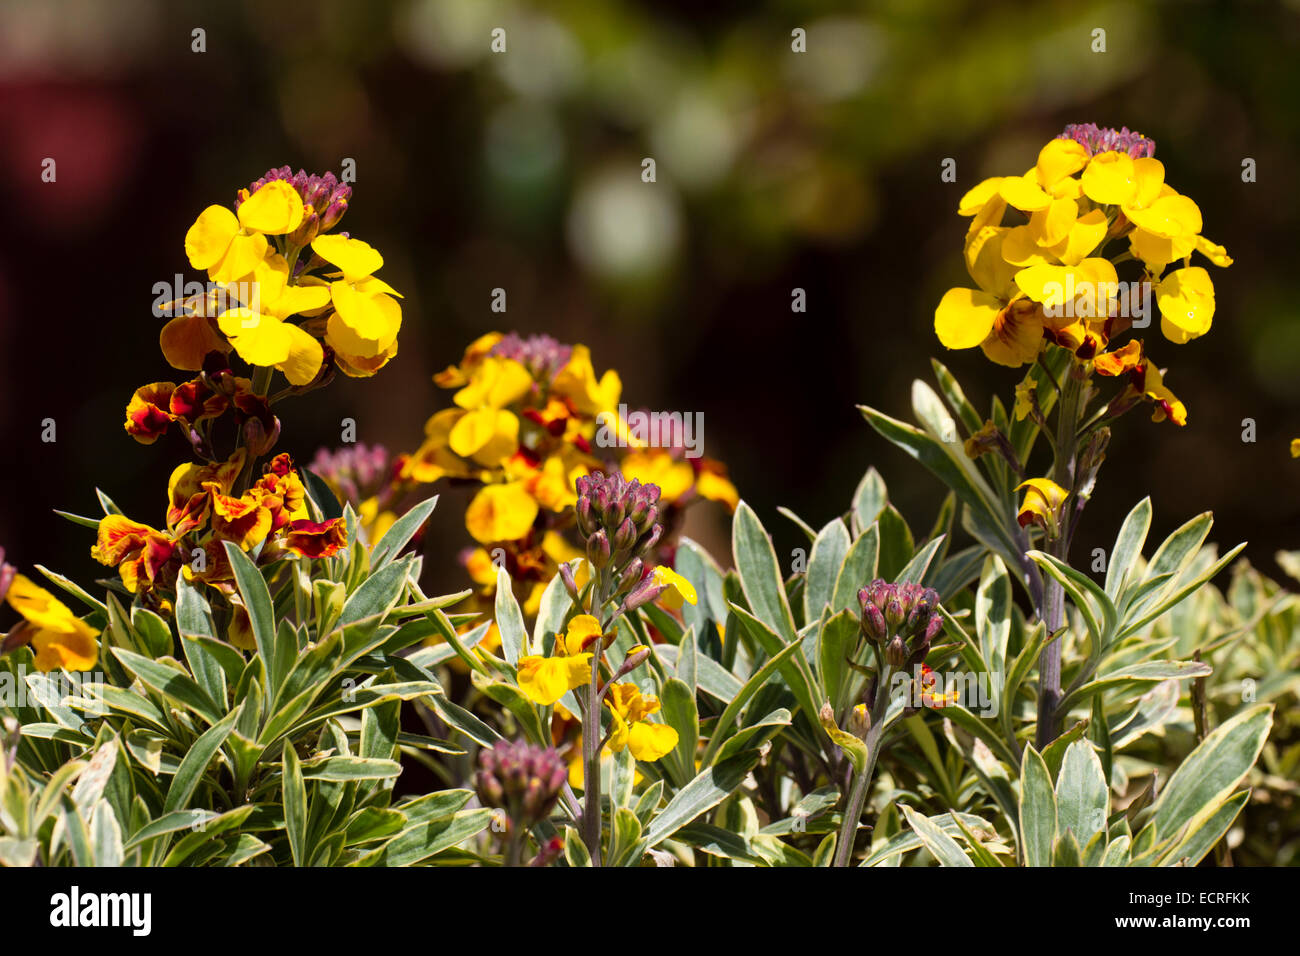 Fragrant Yellow Flowers And Variegated Foliage Of The Shrubby Stock